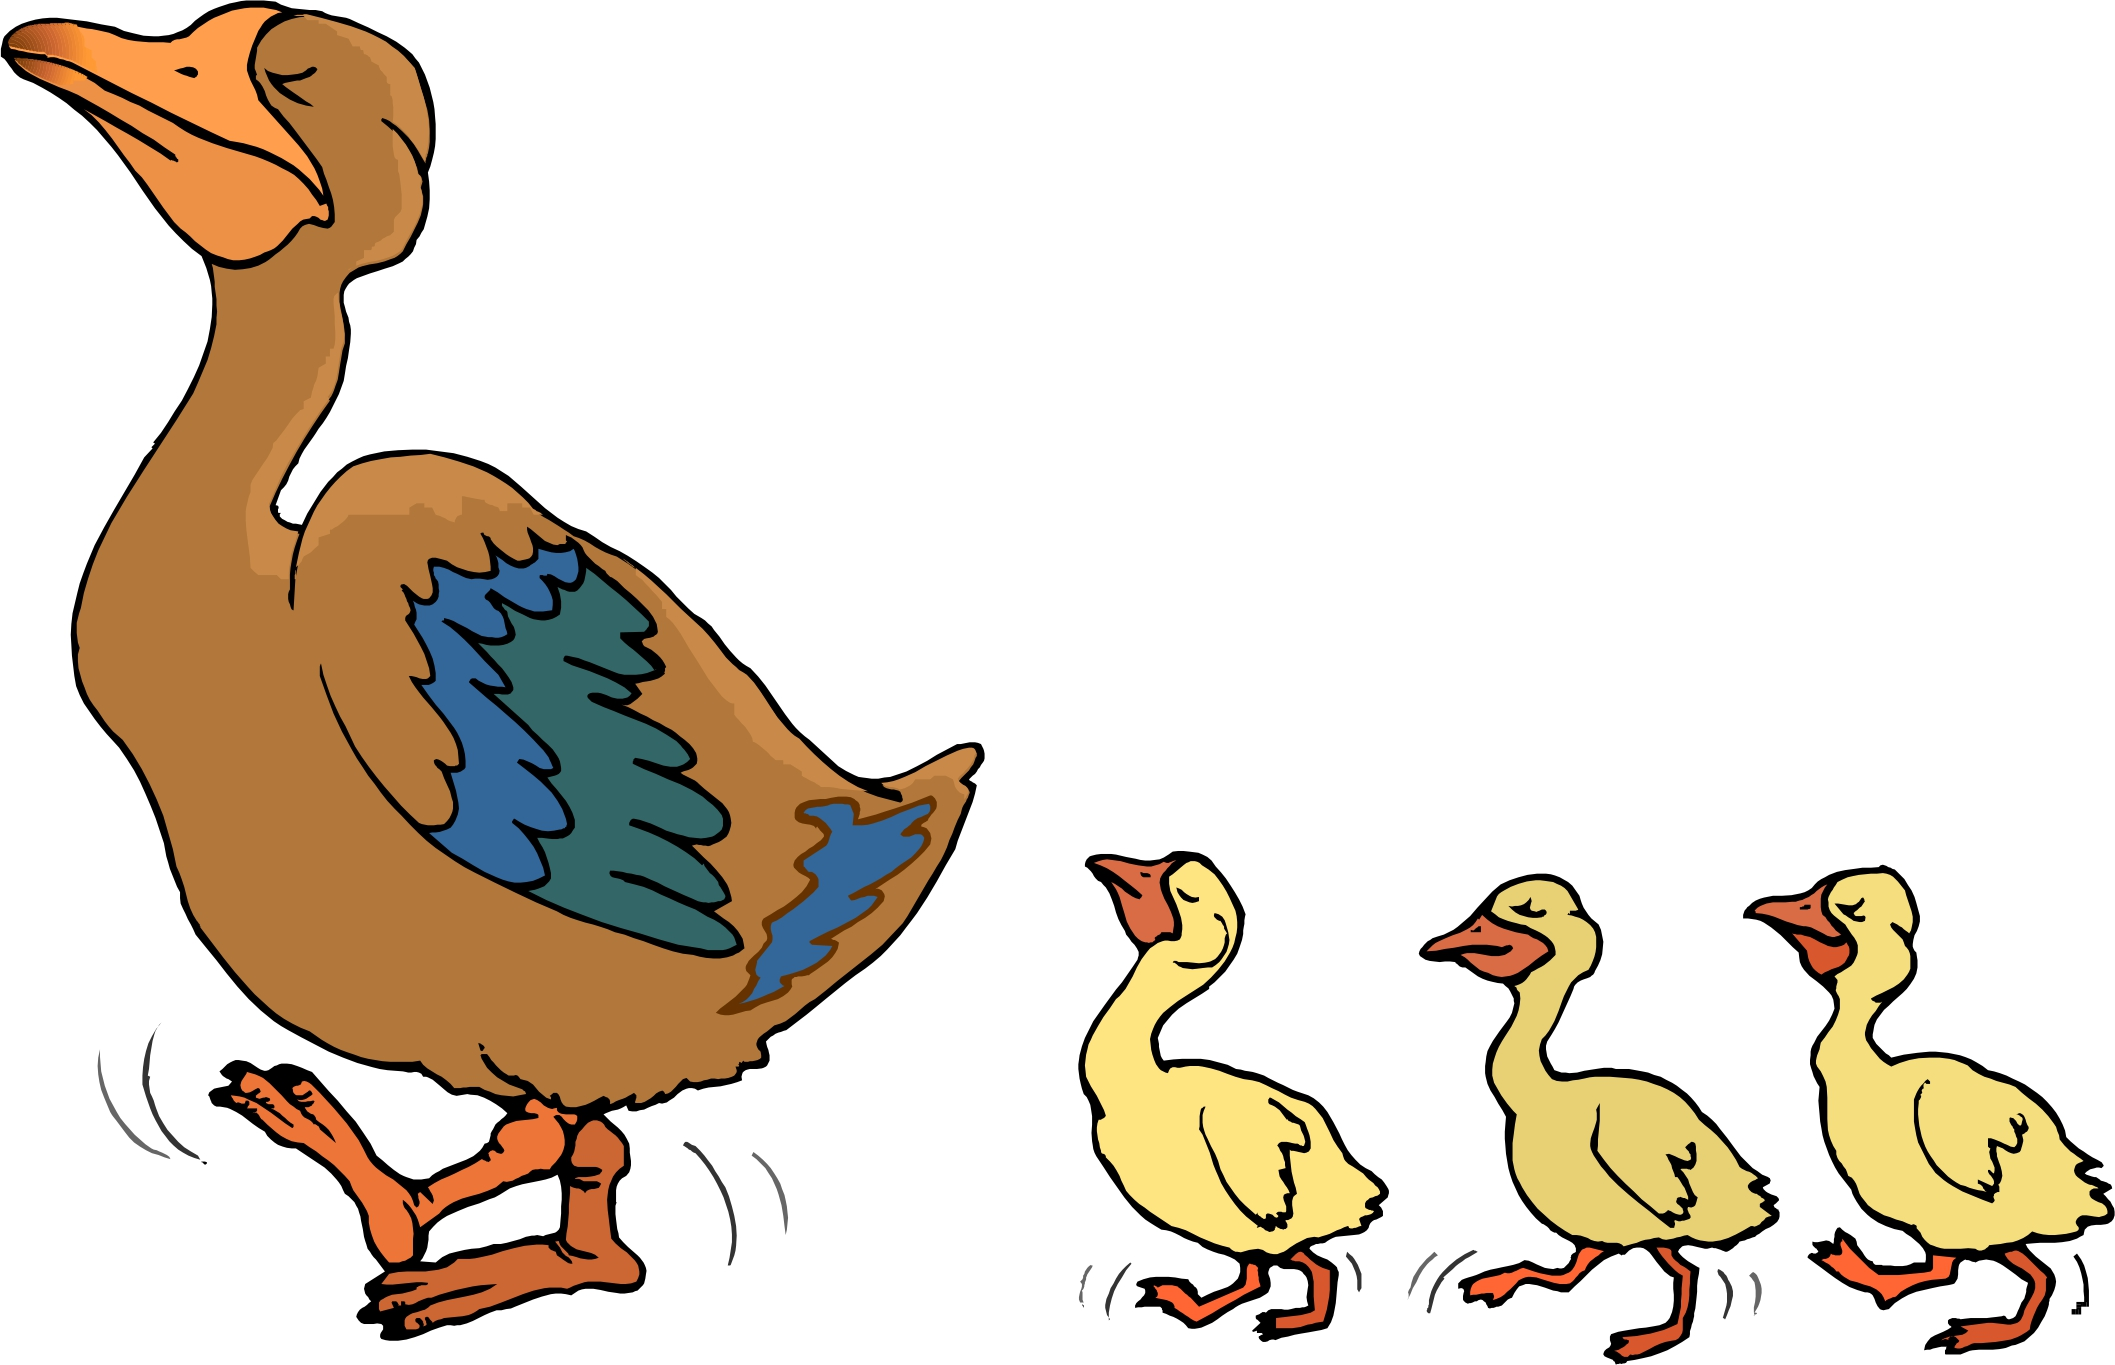 duck and duckling clipart 11 | Clipart Station for Duck And Duckling Clipart  56bof